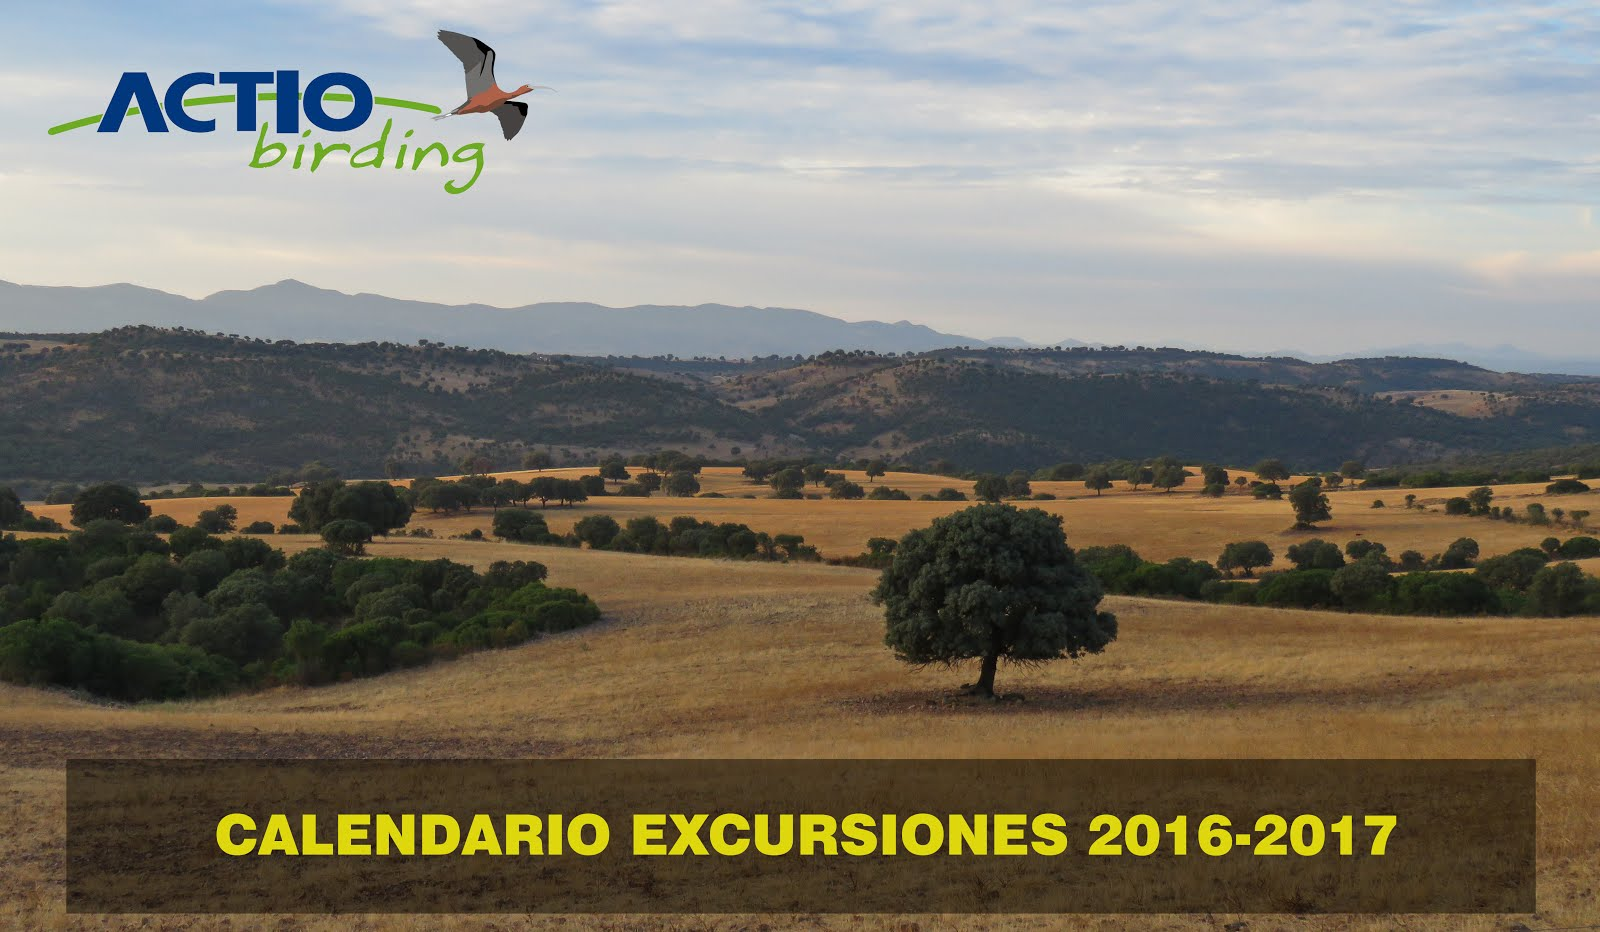 EXCURSIONES 2016-2017